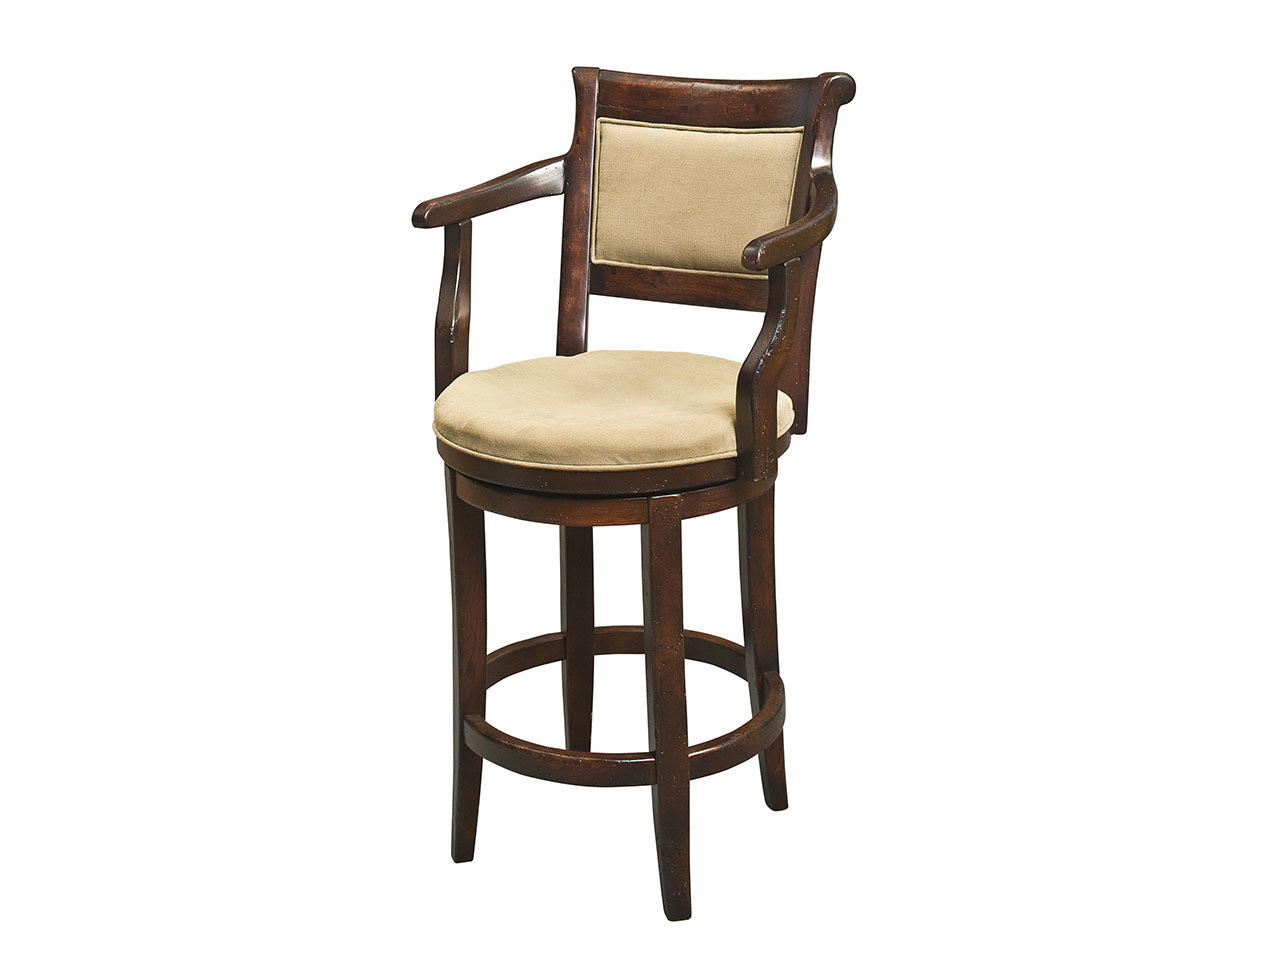 Outstanding Manchester Estate Swivel Bar Stool With Arms Country Willow Pdpeps Interior Chair Design Pdpepsorg